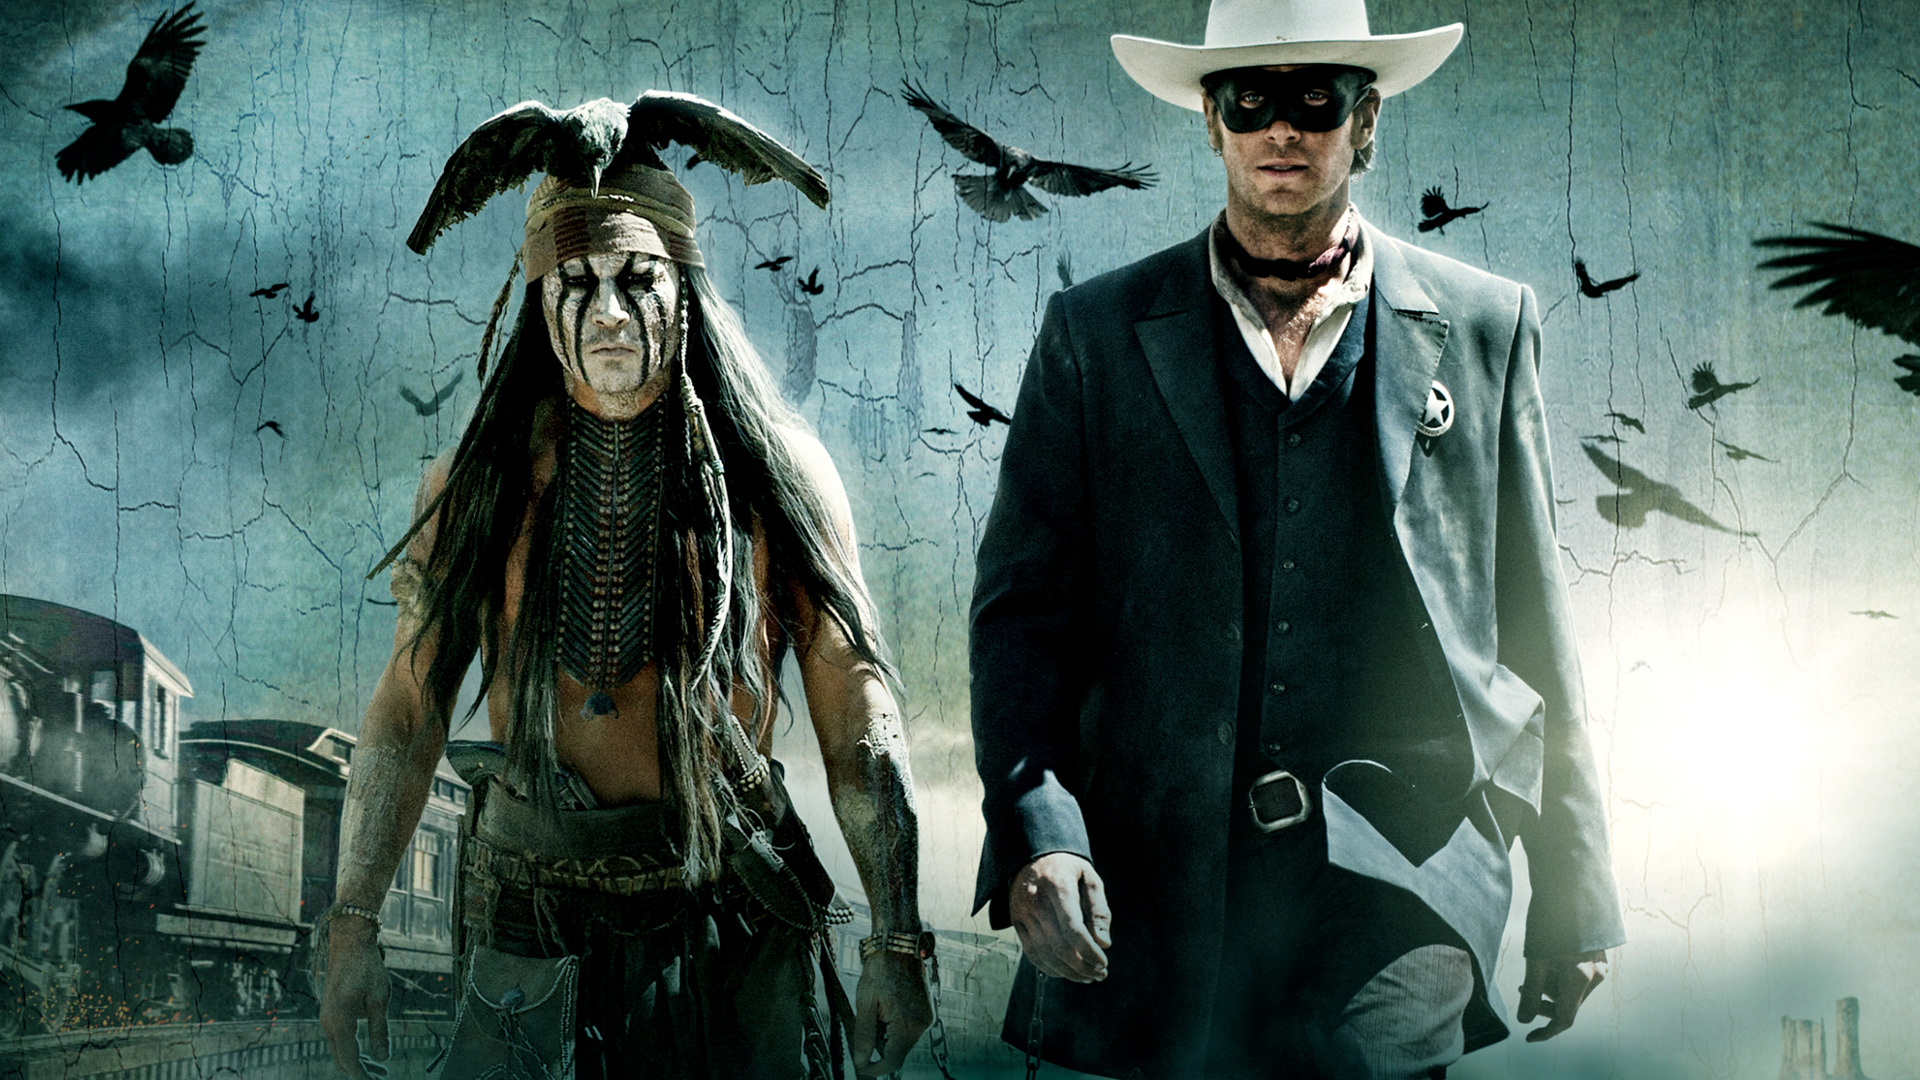 THE LONE RANGER western d wallpaper background 1920x1080